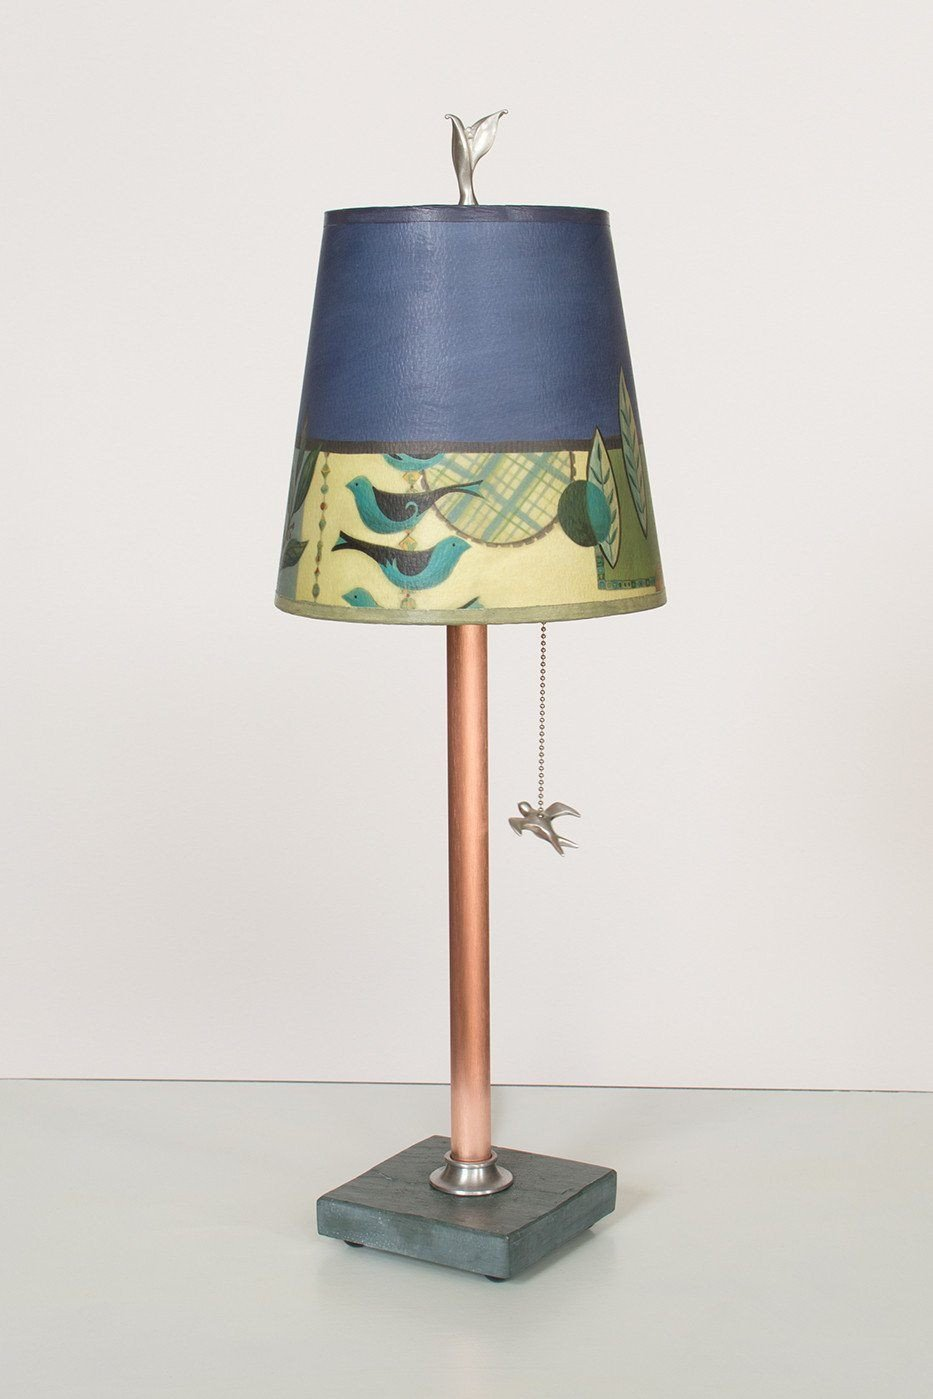 Copper Table Lamp on Vermont Slate Base with Small Drum Shade in New Capri Periwinkle Lit